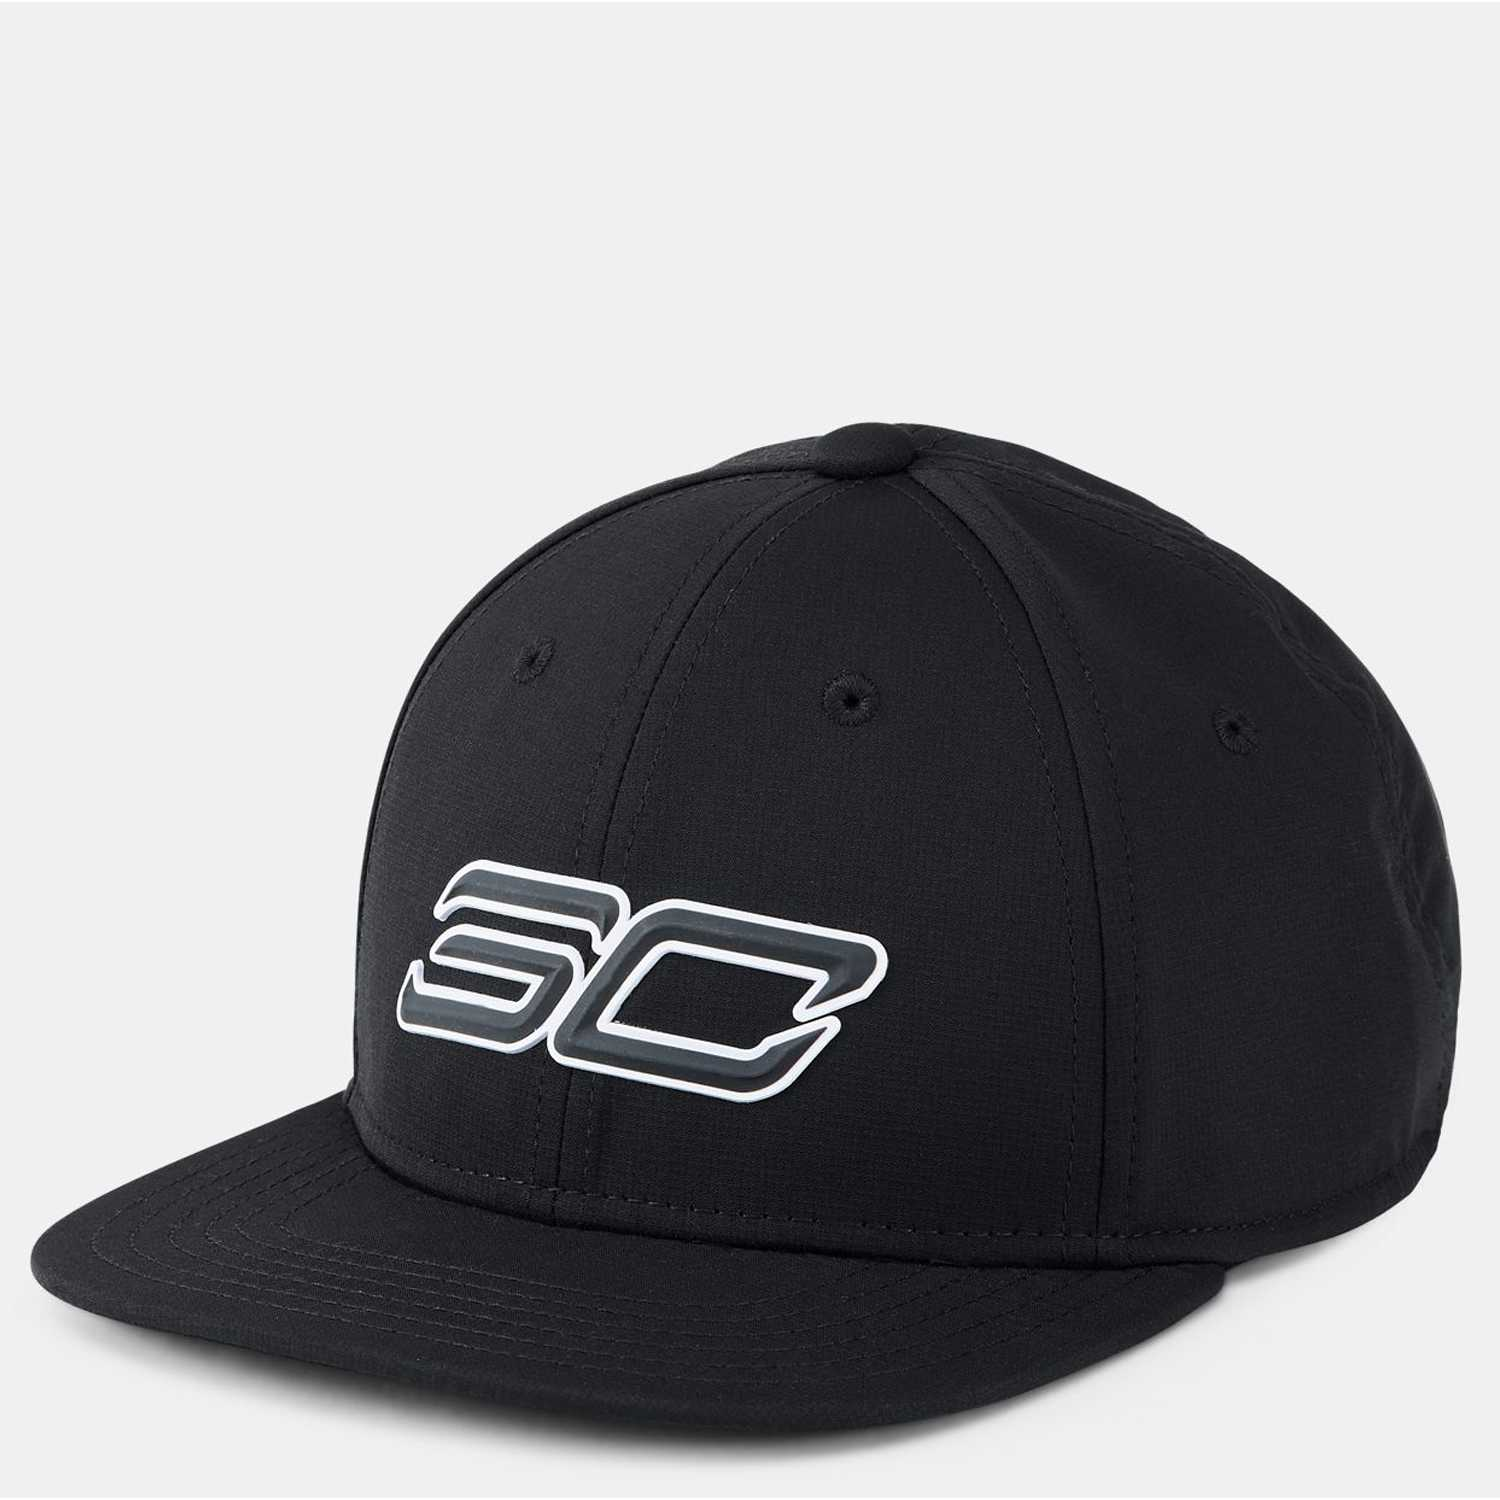 Gorro de Niño Under Armour Negro boy's sc30 core 2.0 cap